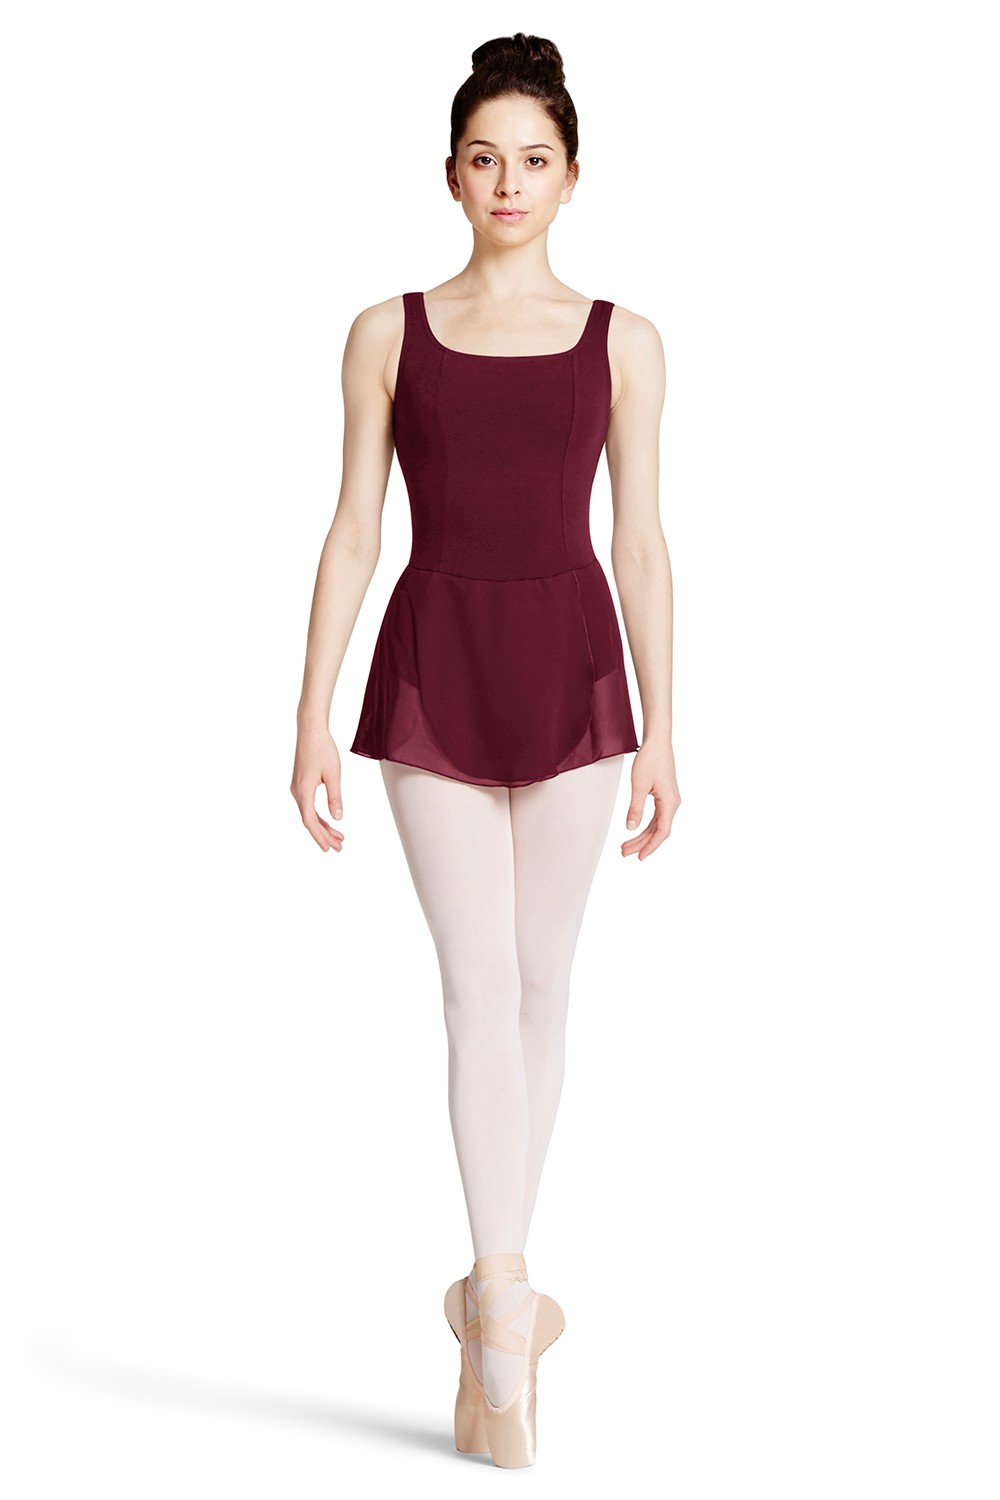 Skirted Tank Leotard Womens Tank Leotards